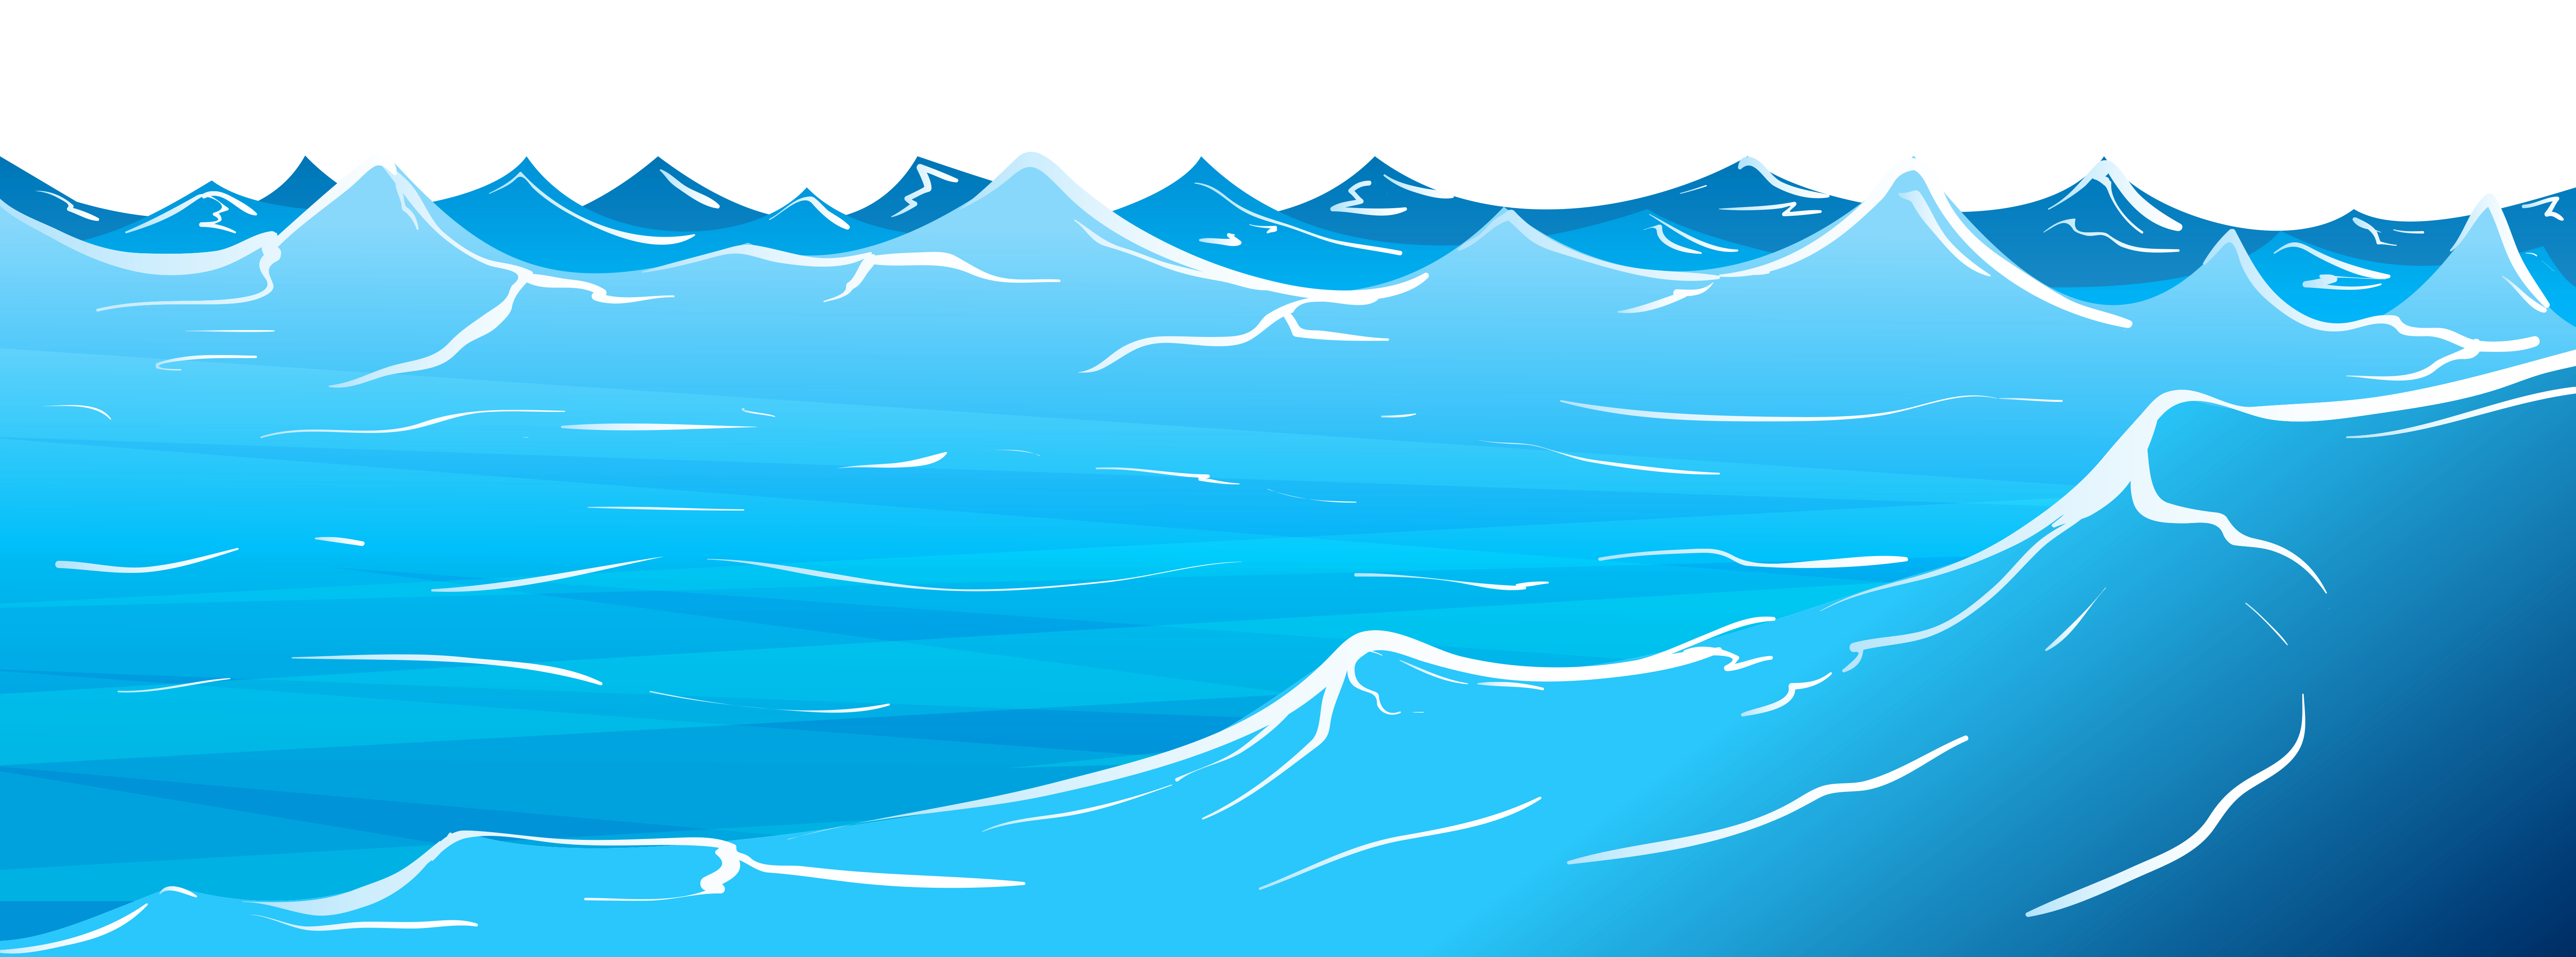 Water cliparts freeuse stock Water Clipart | Free Download Clip Art | Free Clip Art | on ... freeuse stock